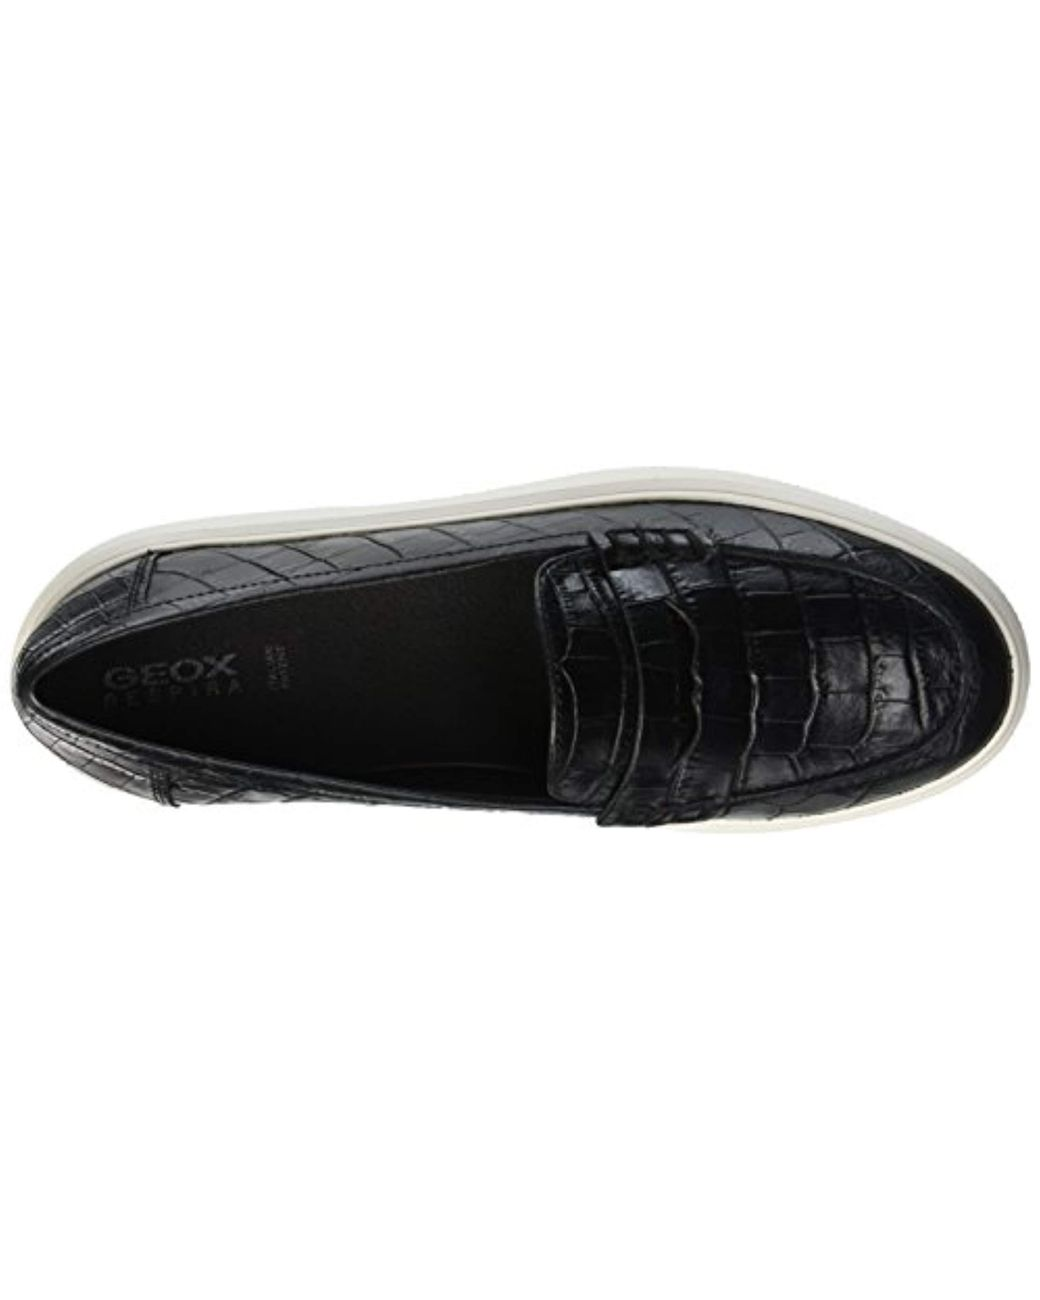 4c0d34efcd686f Geox D Kaula D Loafers in Black - Save 31% - Lyst